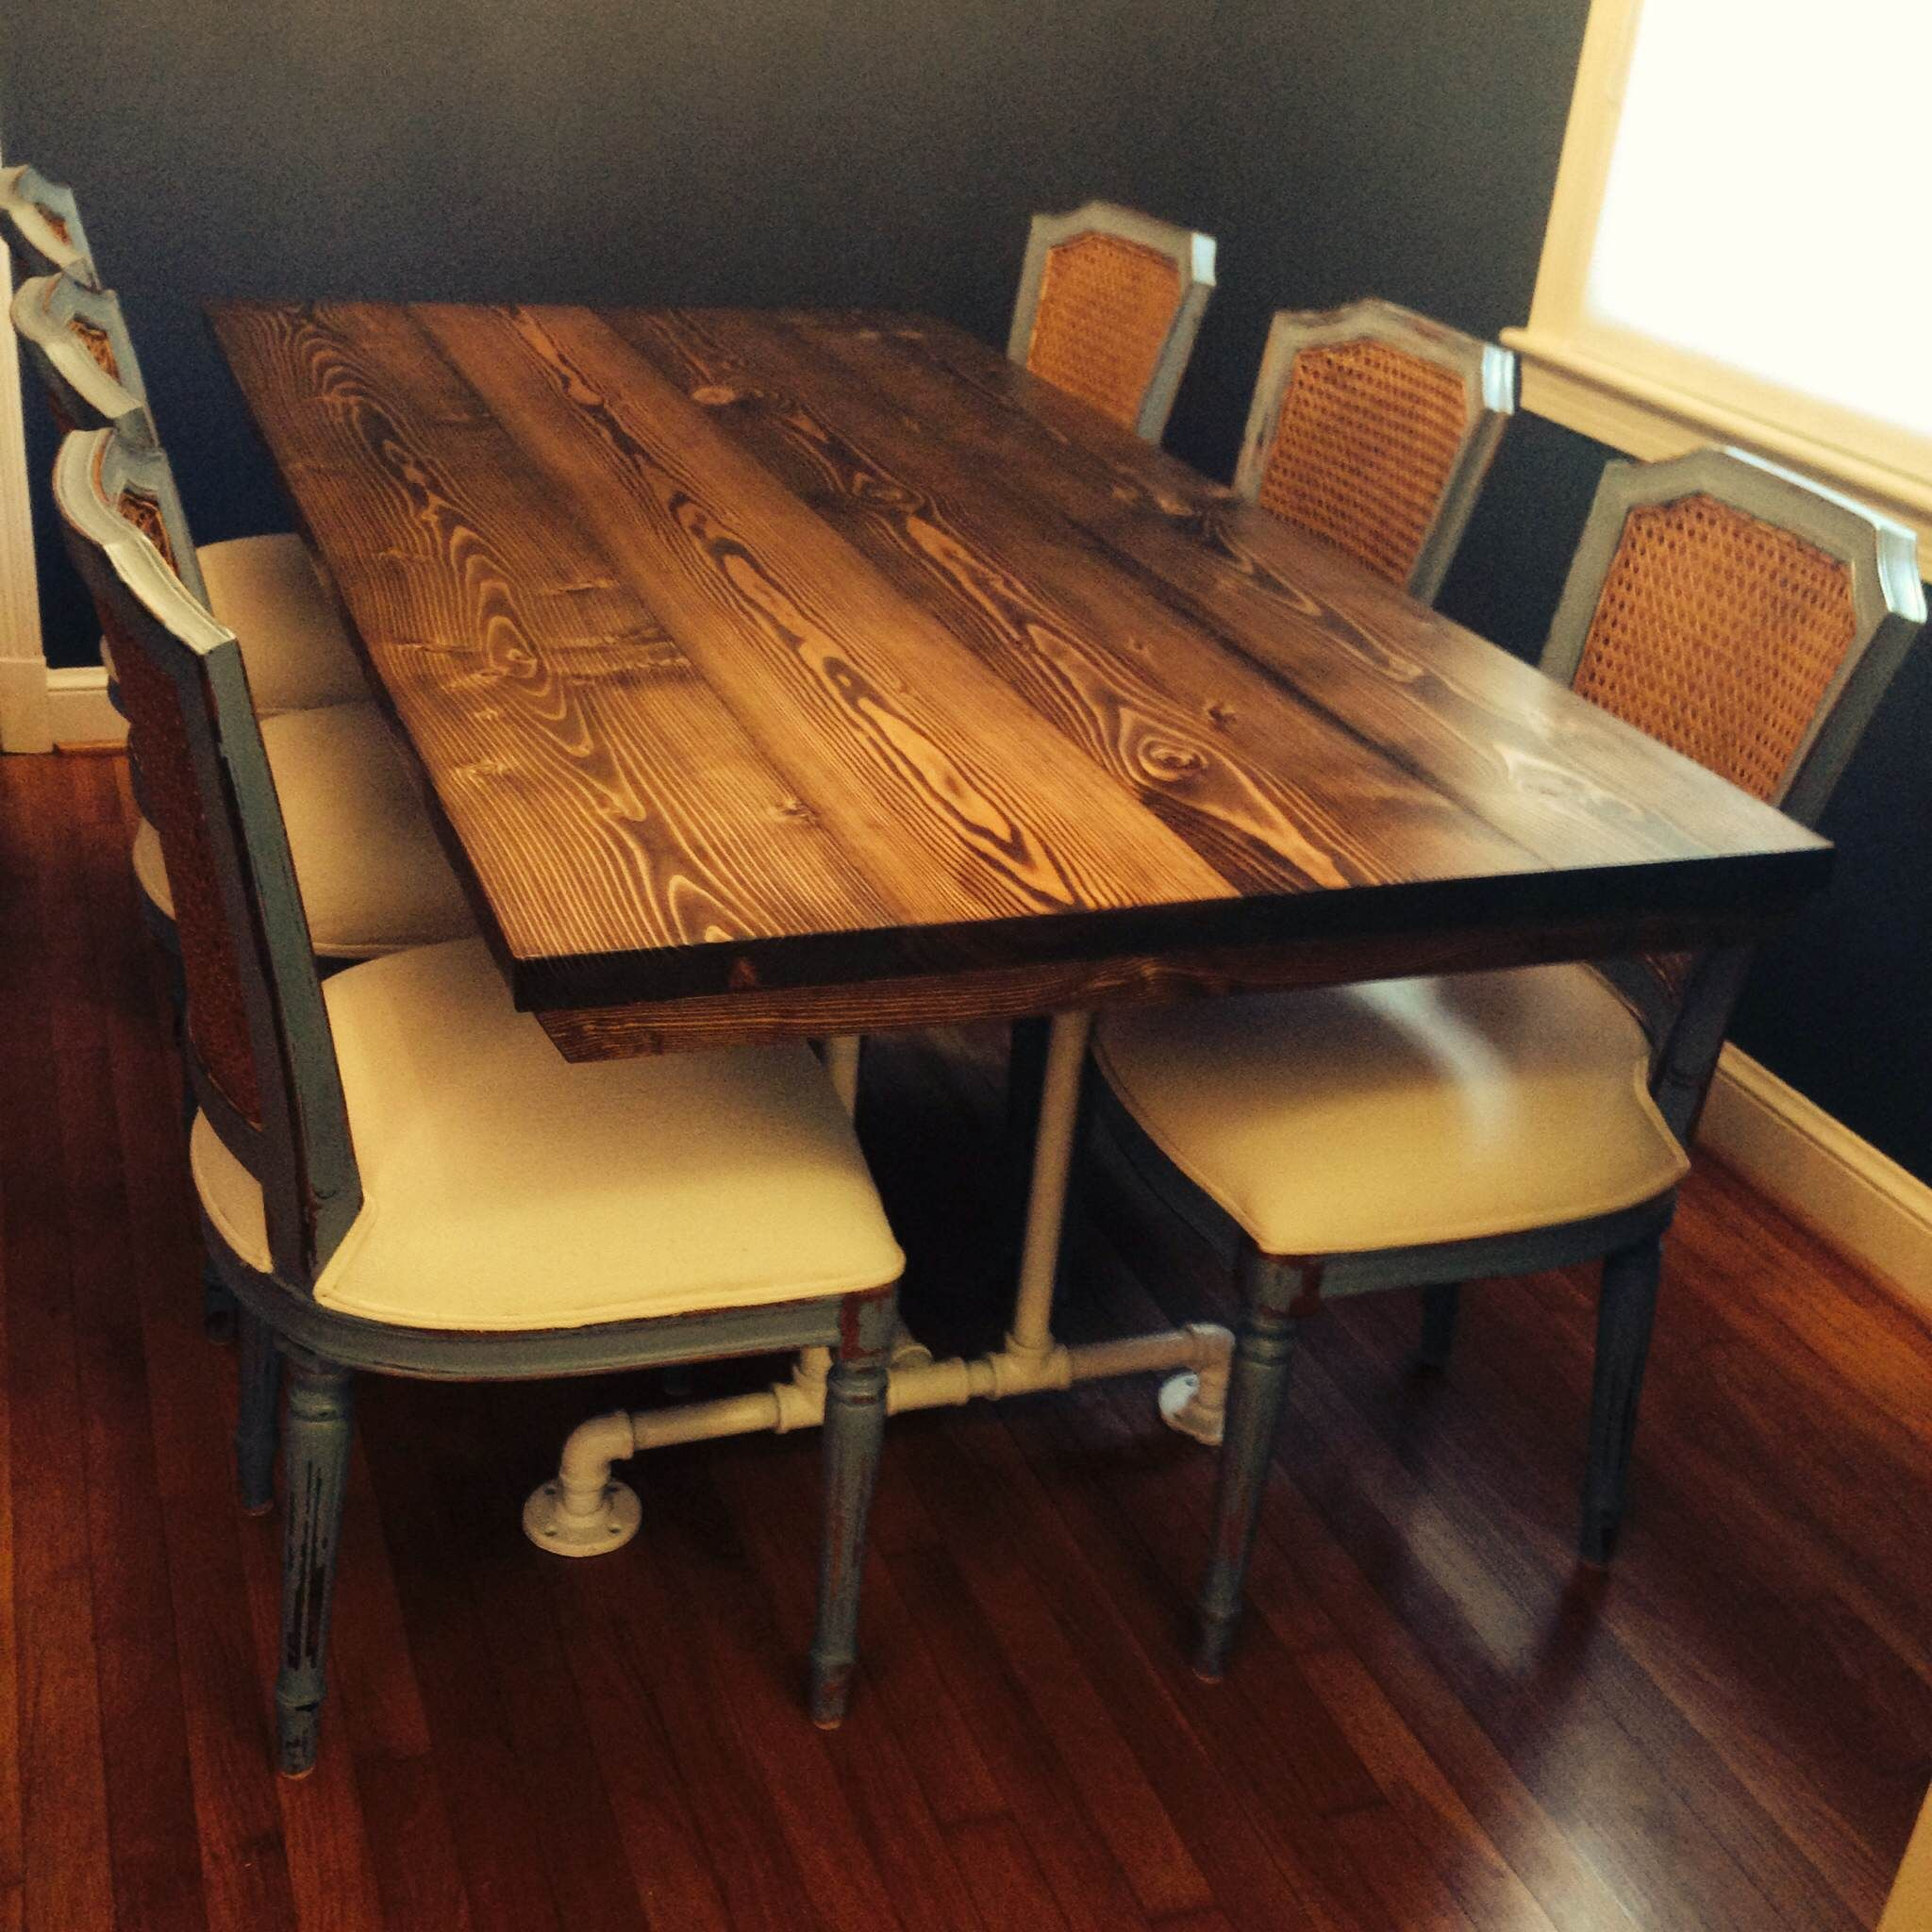 Black Walnut Kitchen Table Appliances Package Deals 6 39 Industrial Style Solid Wood Stained Dark